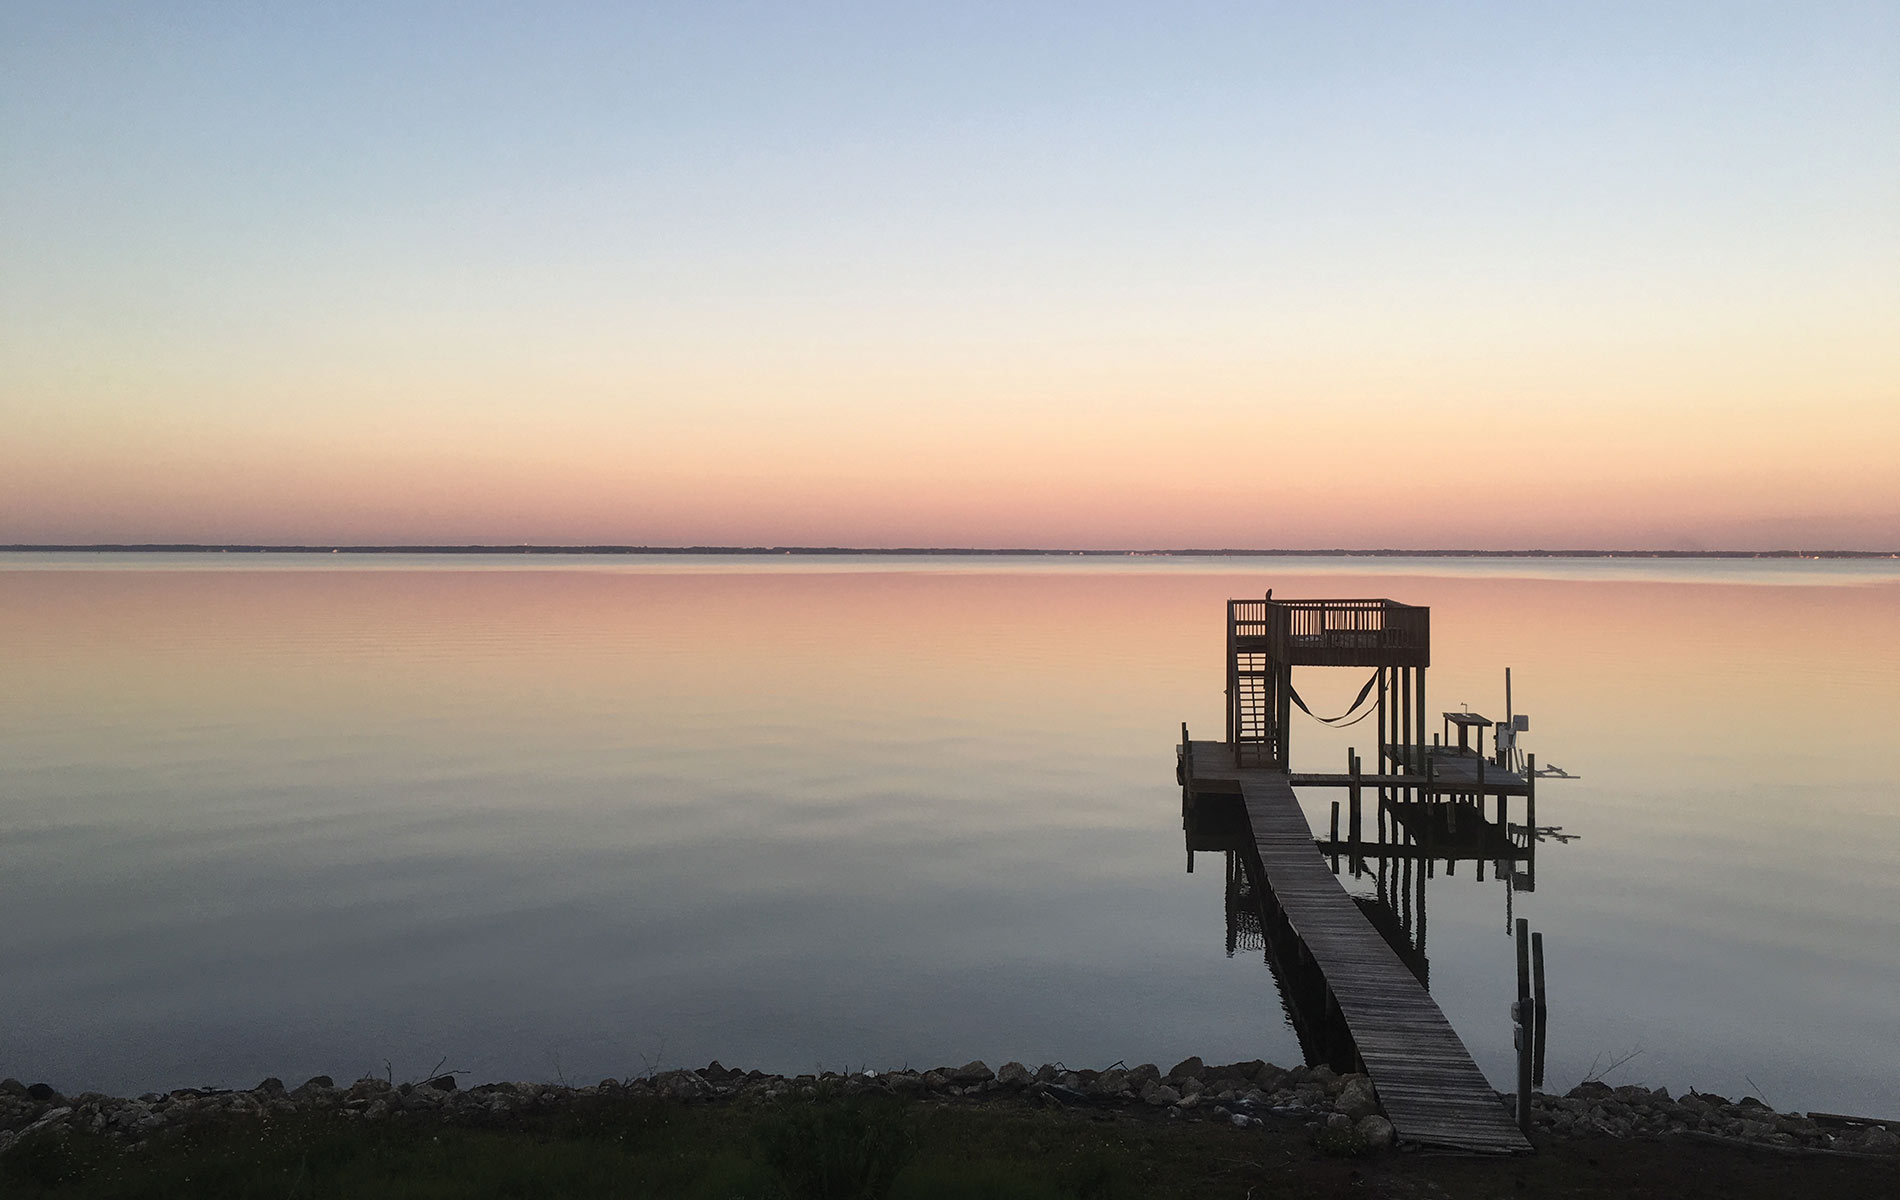 View of the dock and sunset on Florida's Choctawhatchee bay